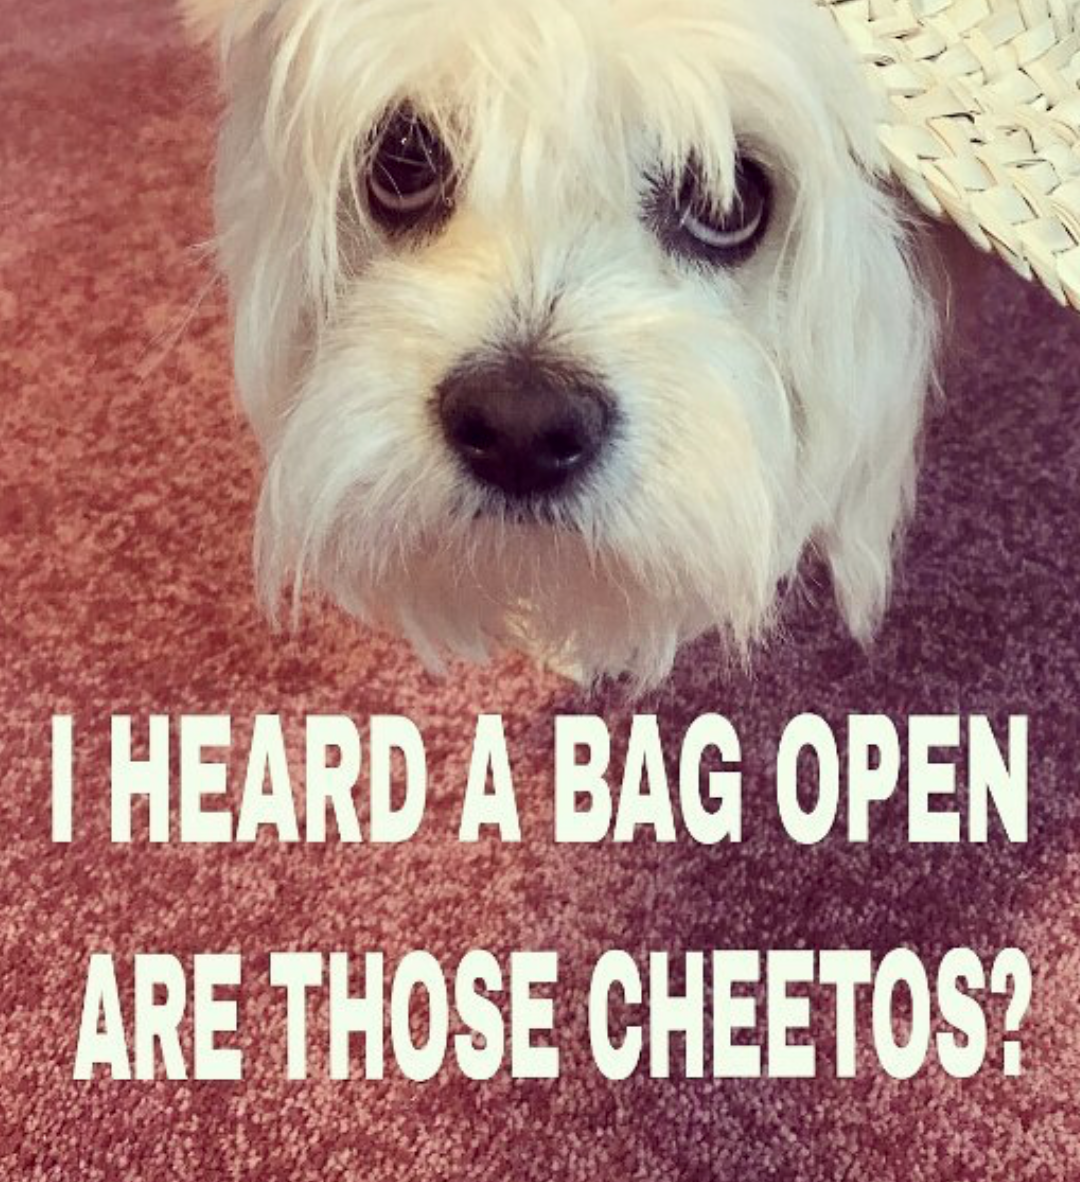 begging dog asking for Cheetos